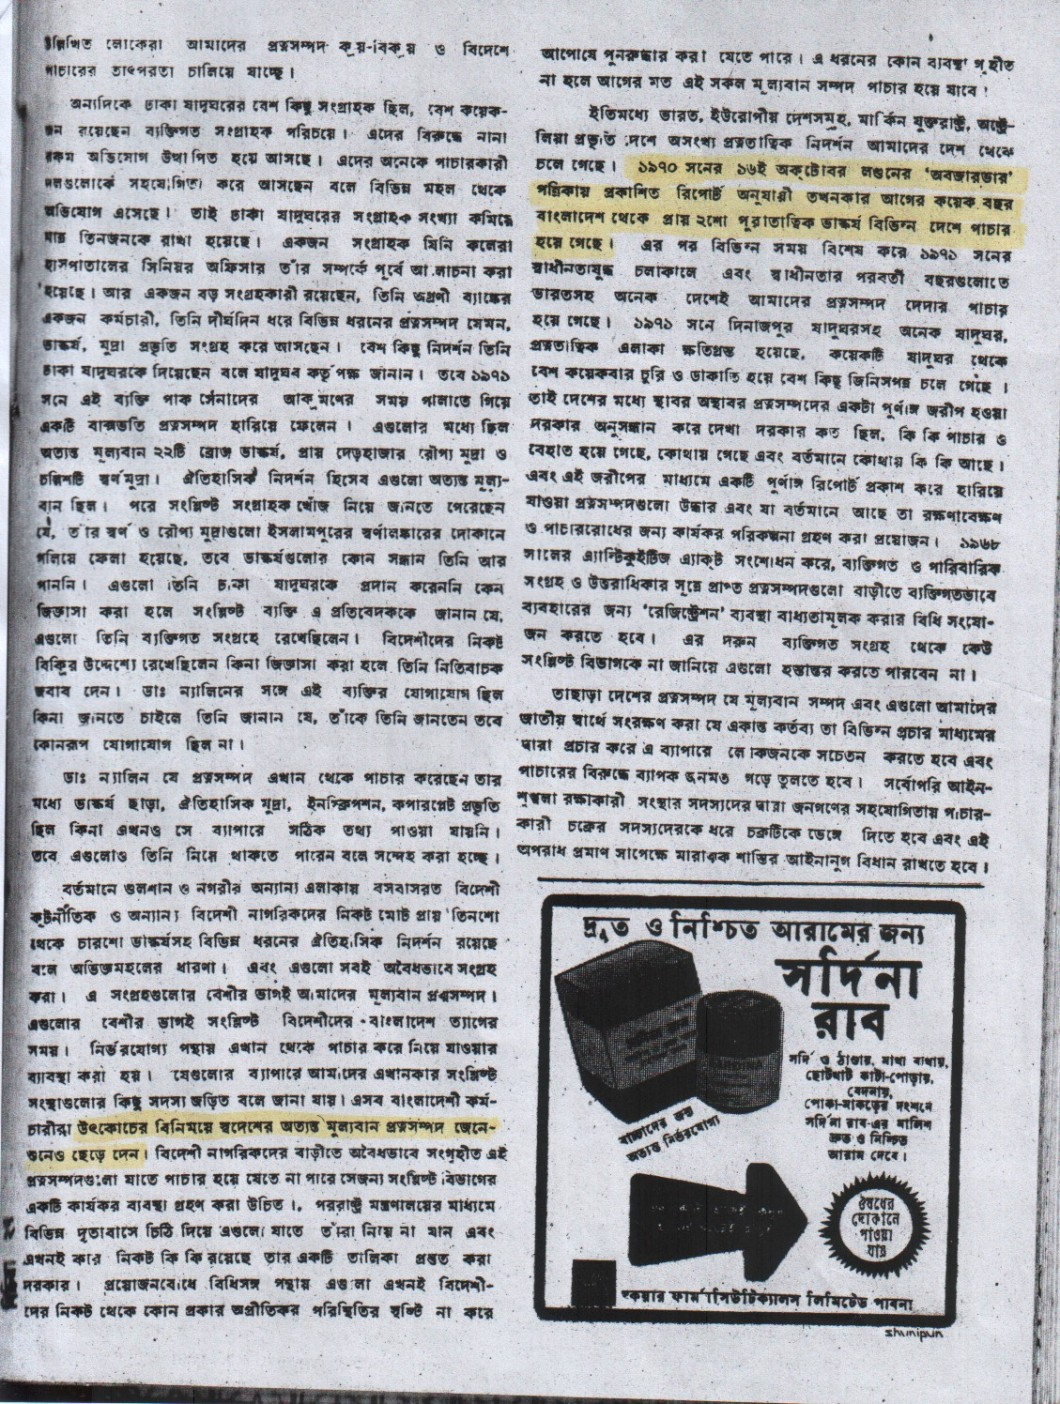 Weekly Bichitra ,  November 18, 1977, p 4